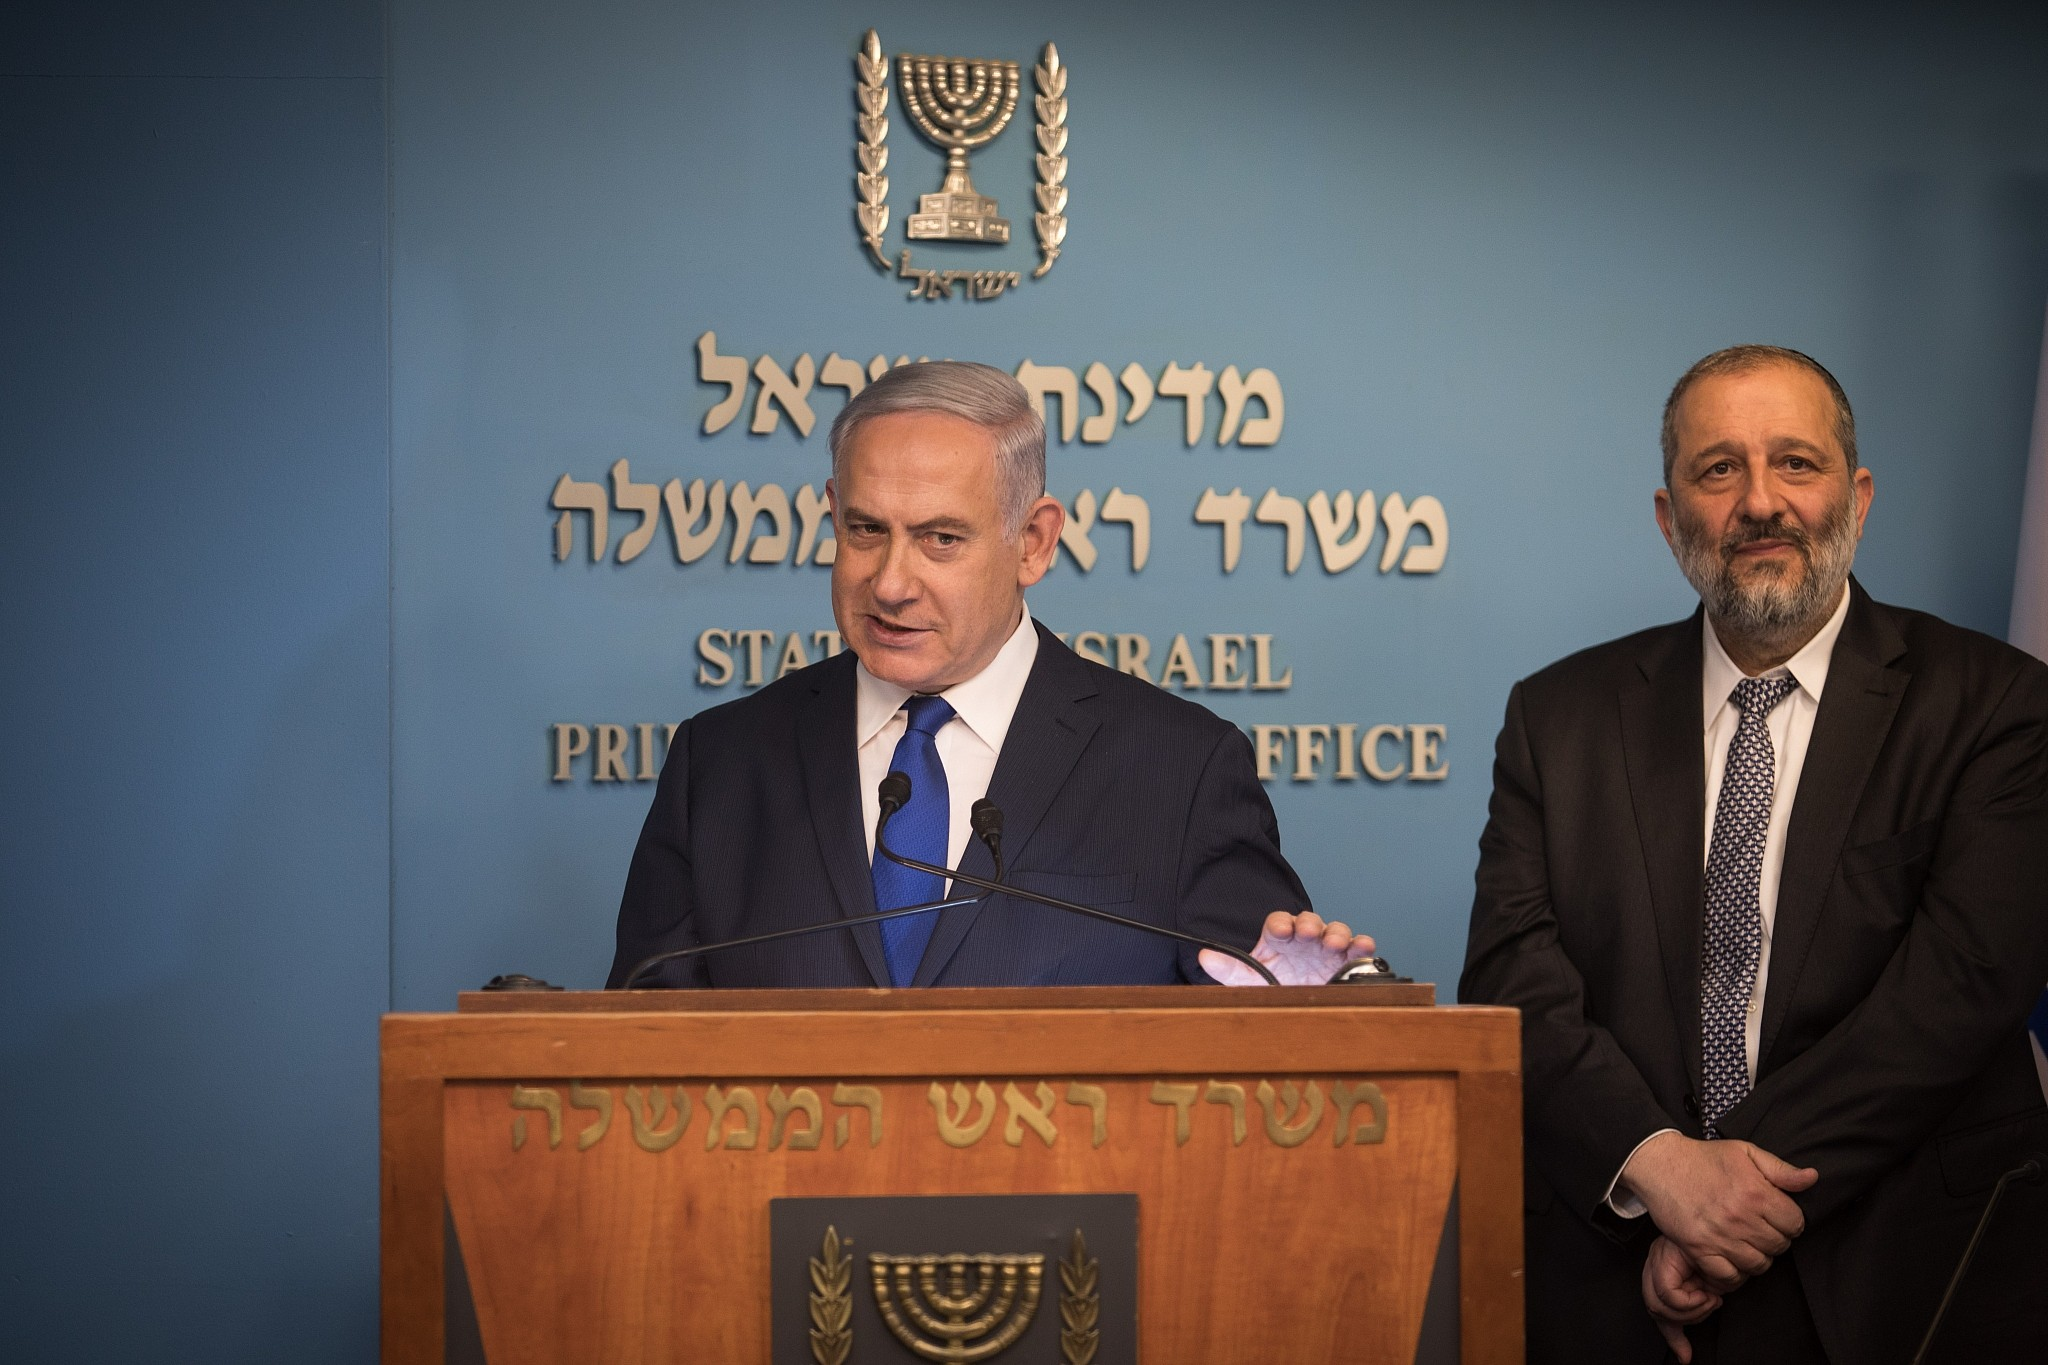 Benjamin Netanyahu backs out of asylum-seeker deal